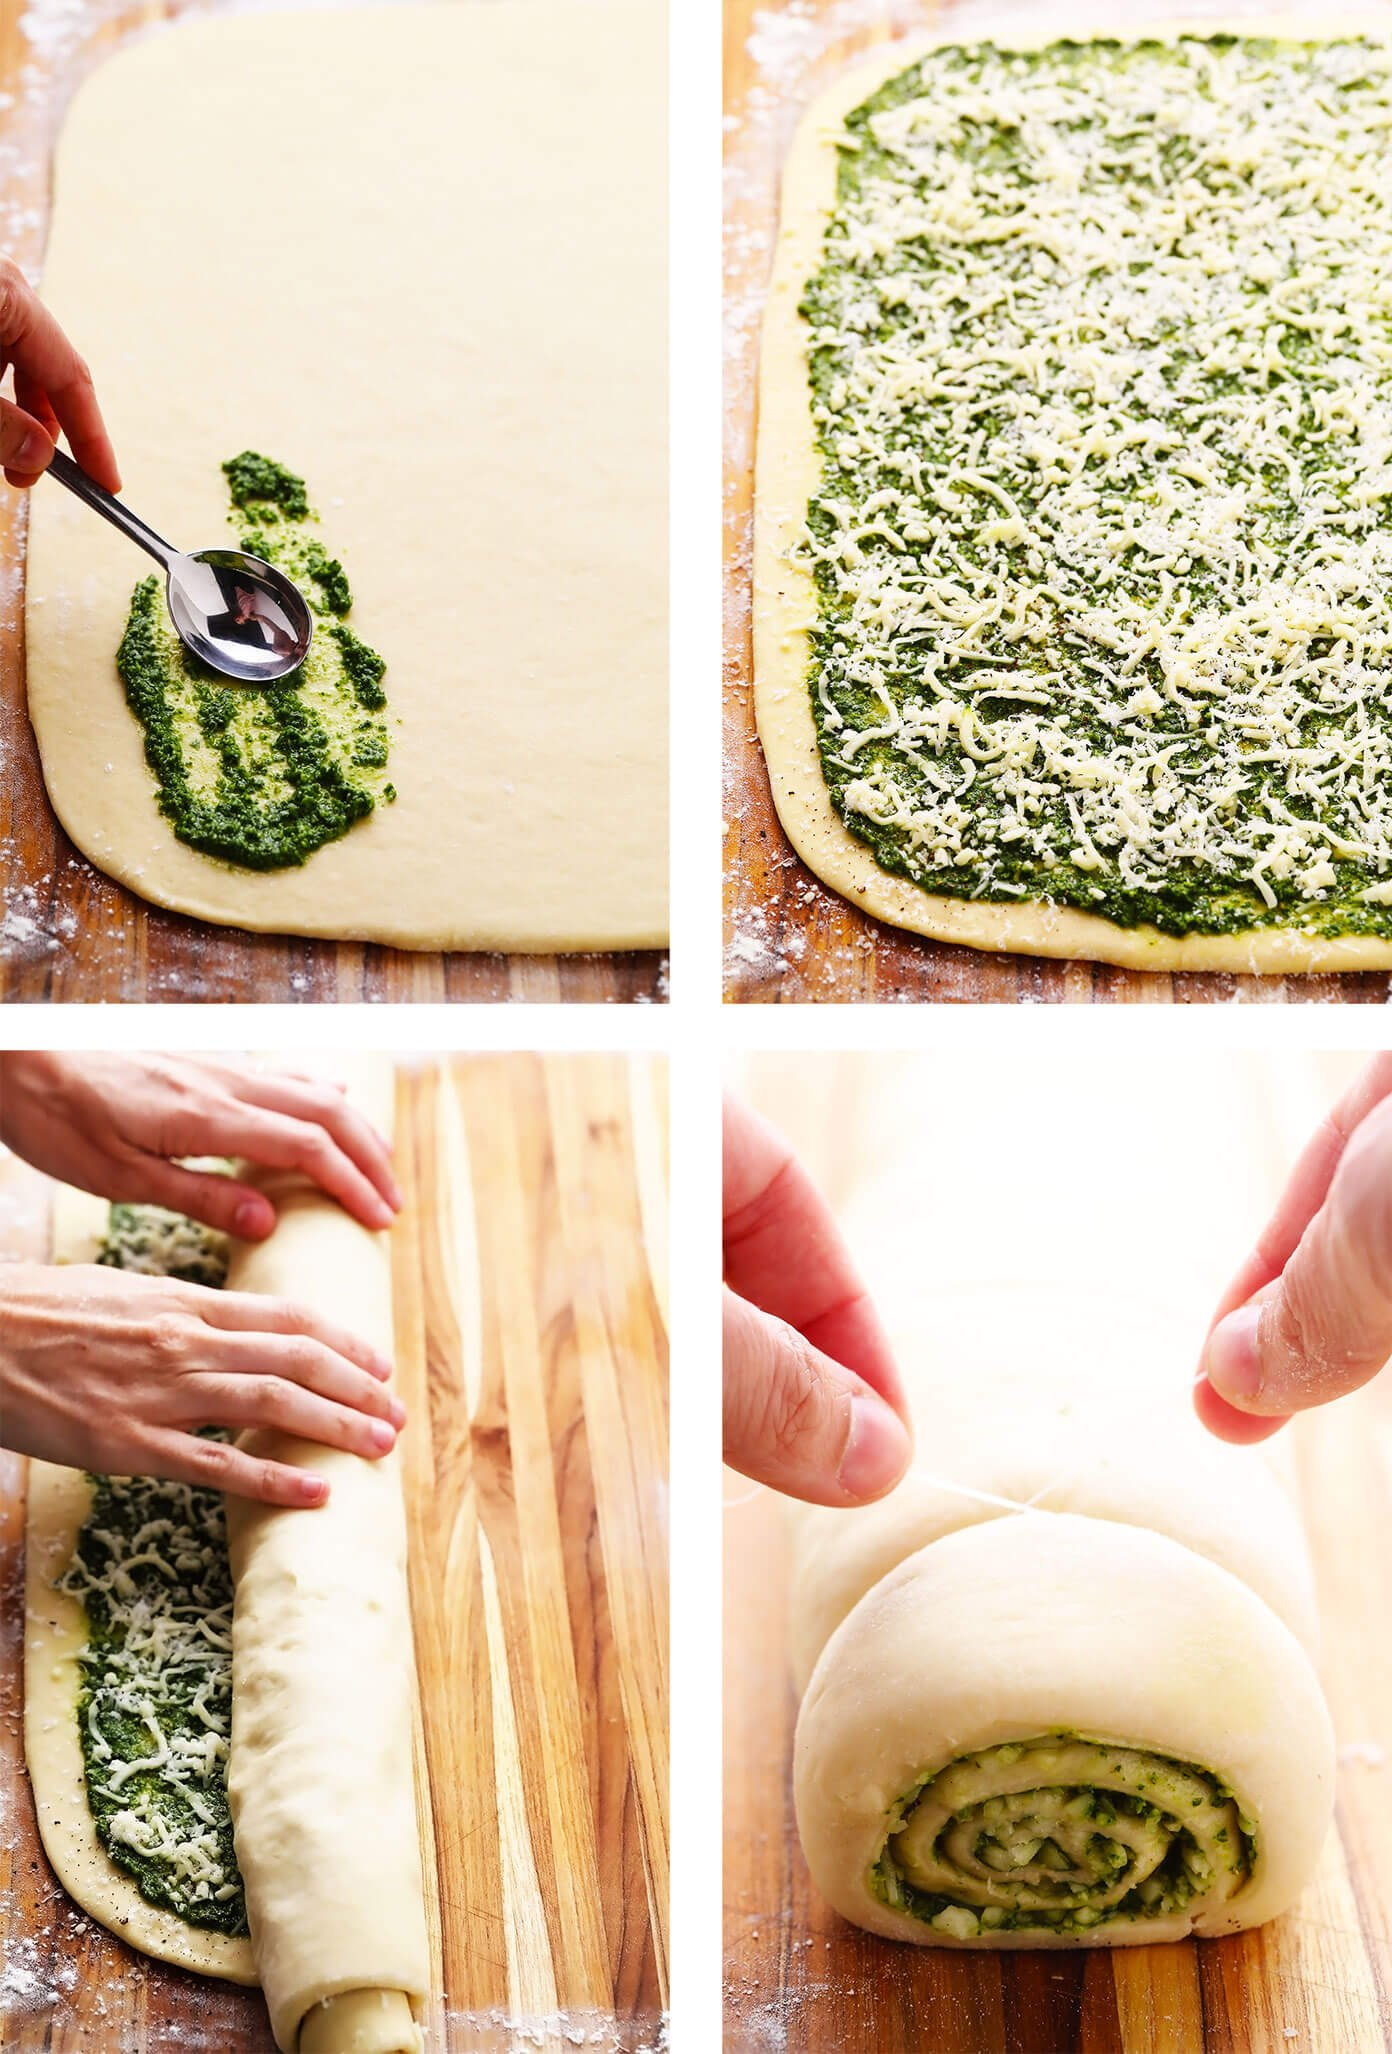 Step By Step of How To Make Cheesy Pesto Rolls